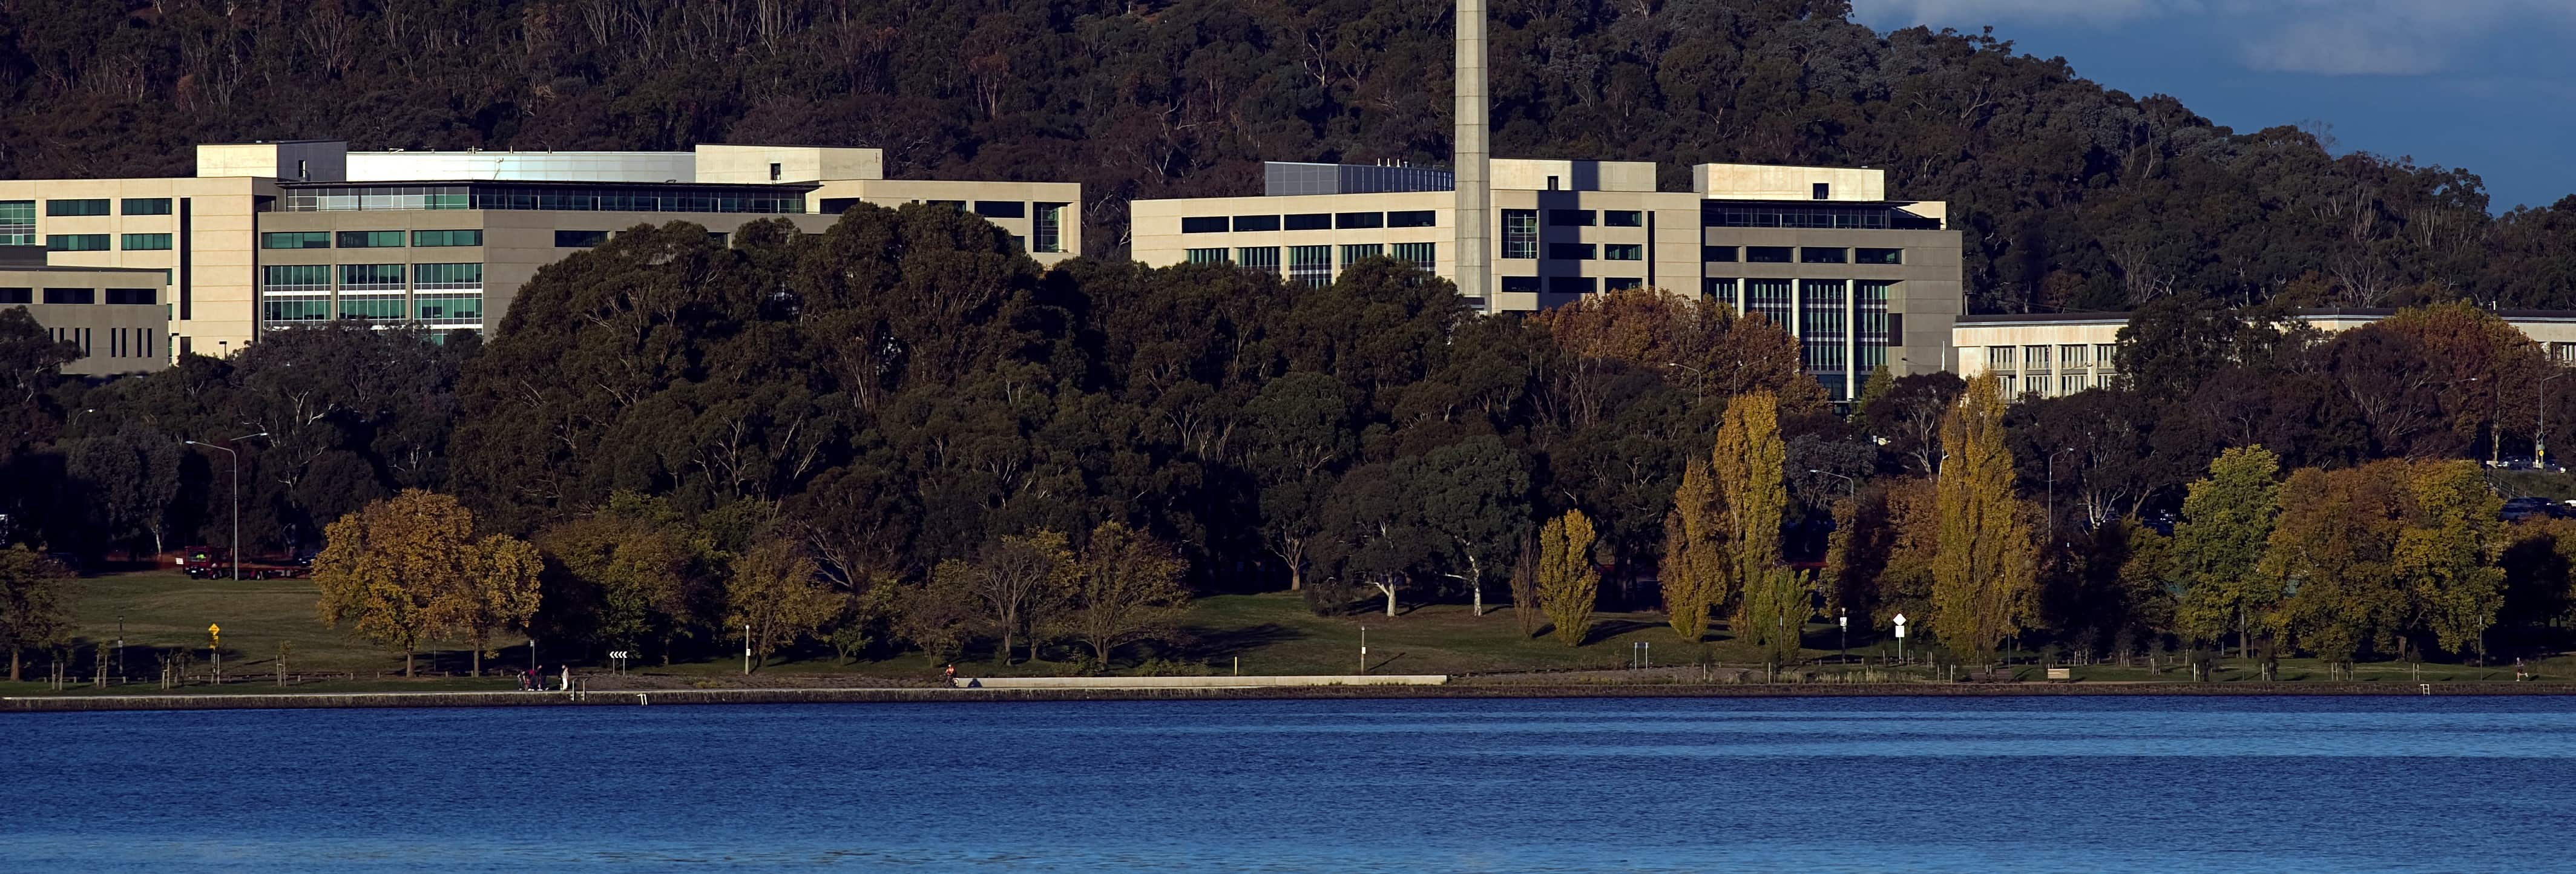 The Russell Offices in Canberra (Photo: Getty Images/UniversalImagesGroup)